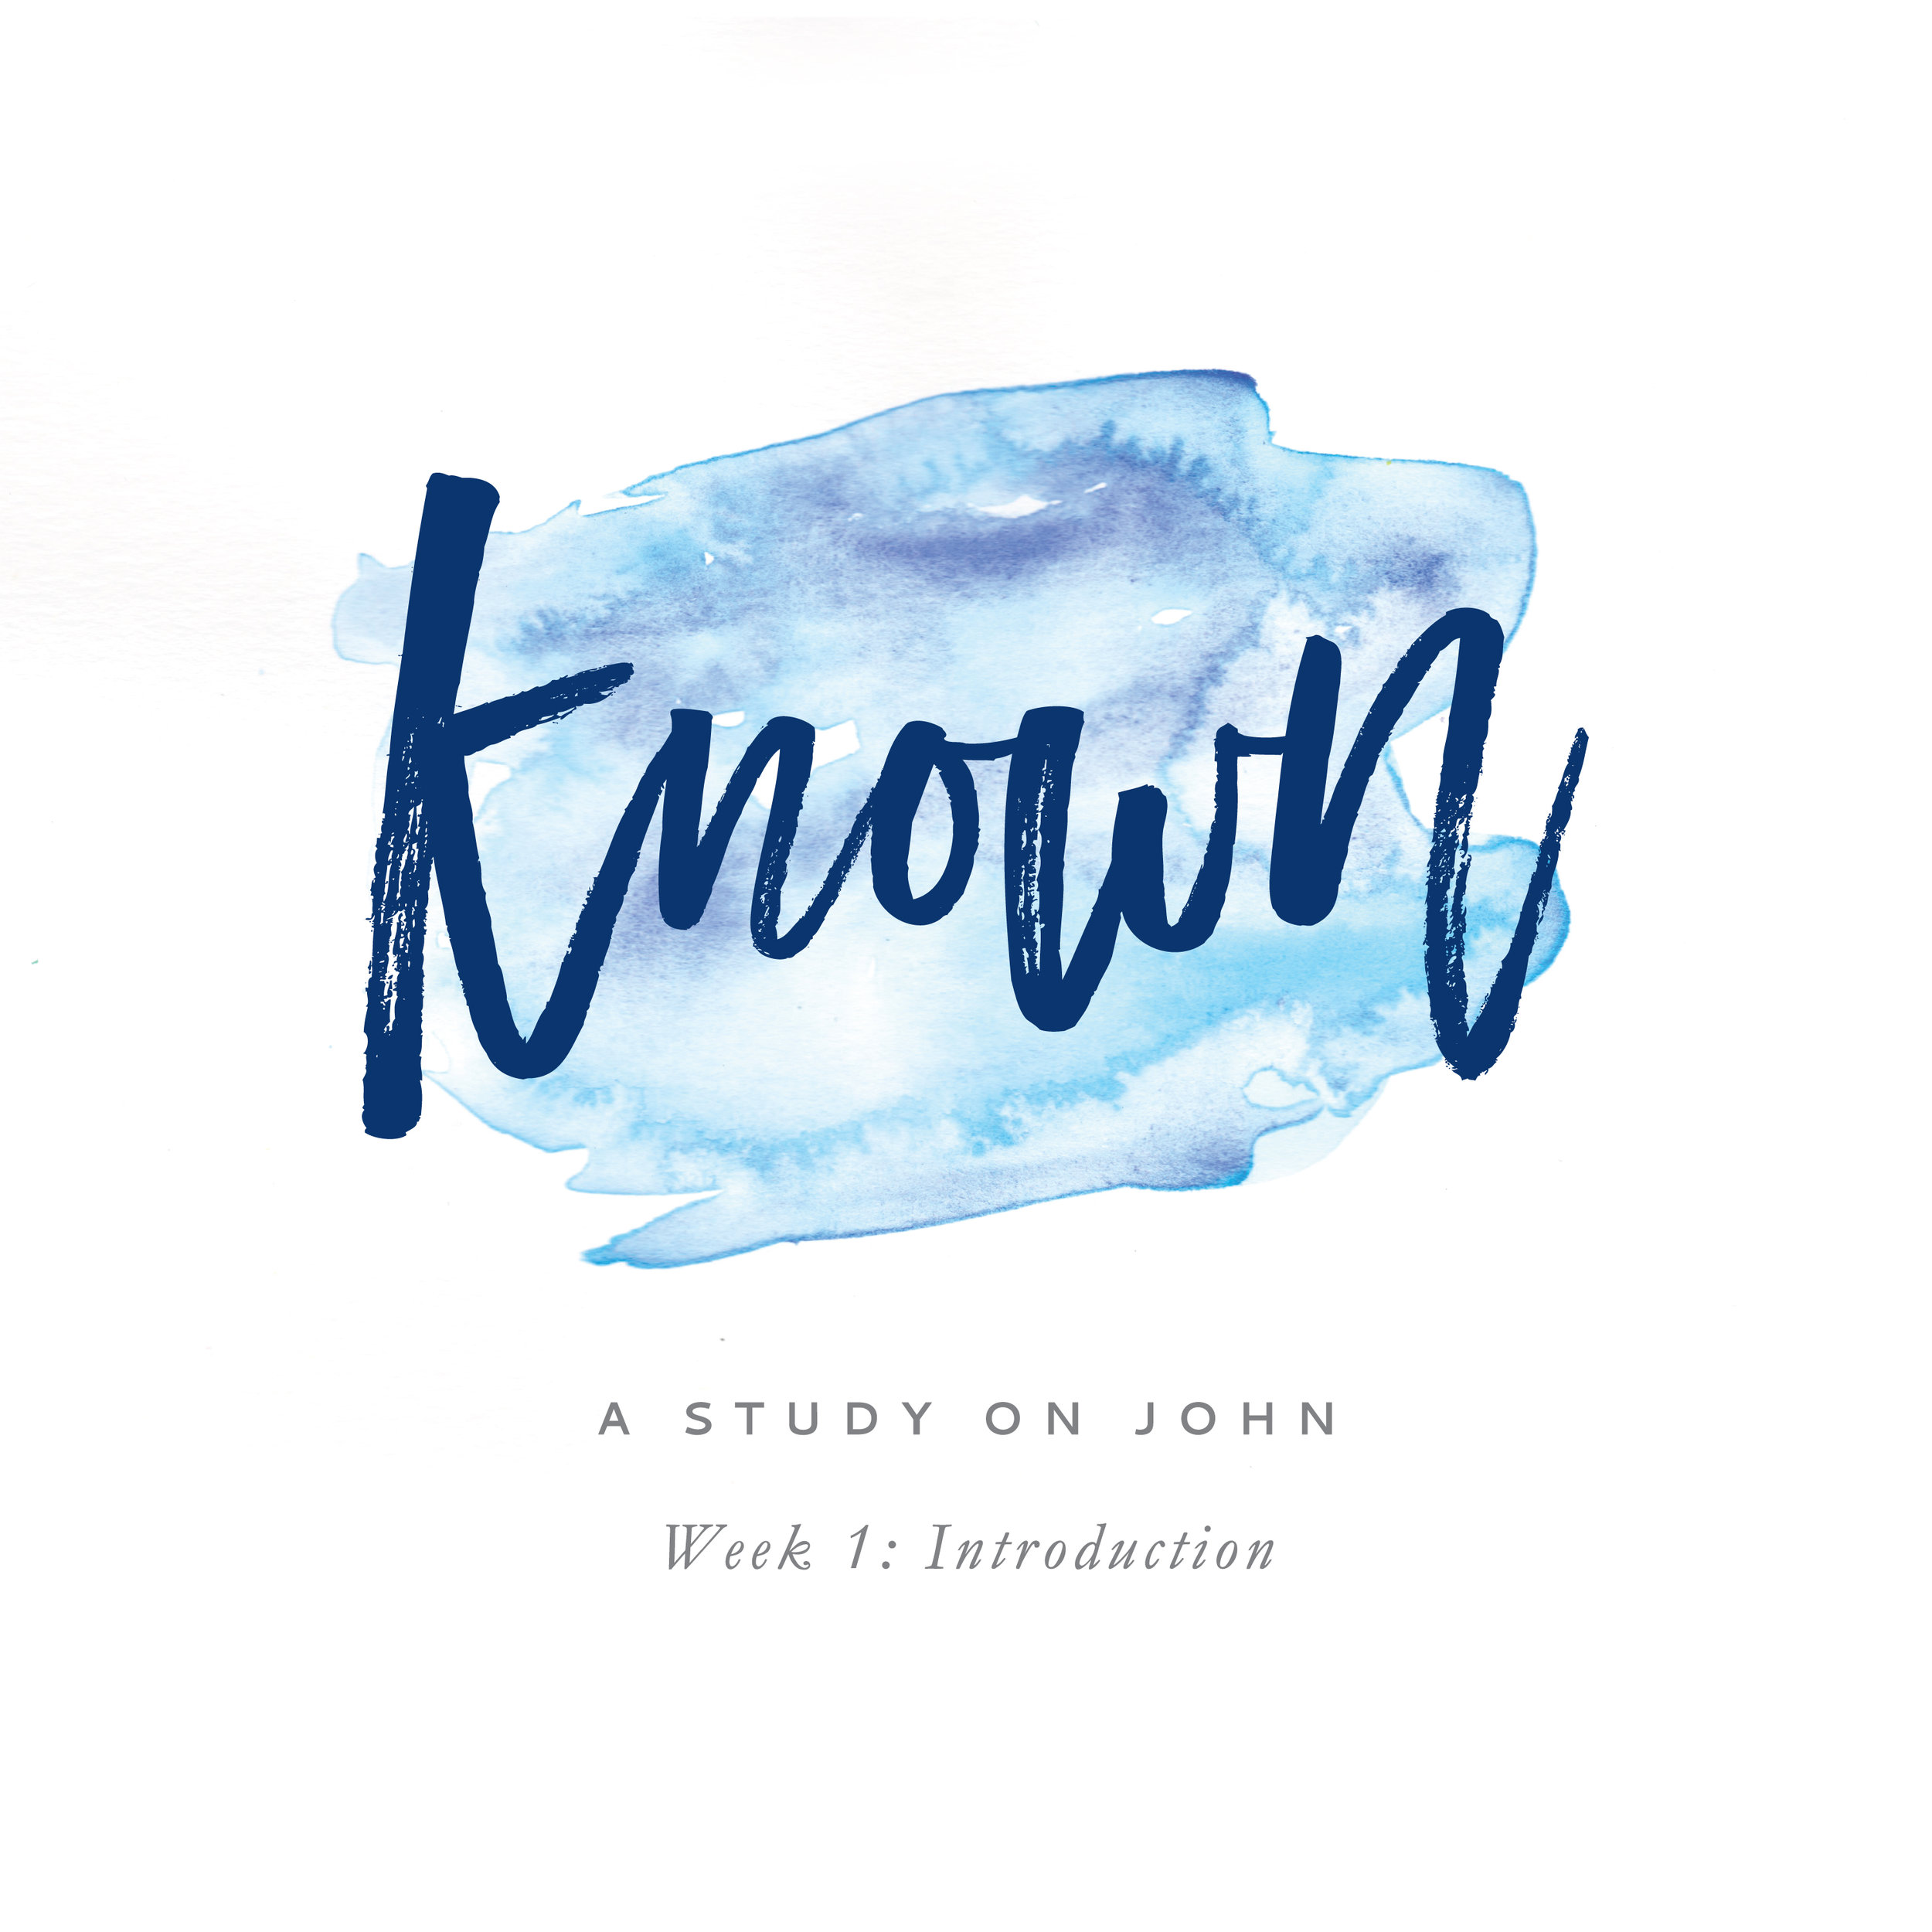 Known: A Study on John by Leslie Ann Jones. Week 1 Podcast. In this lesson, we cover the heart behind the study and a basic introduction to the gospel of John. The lesson corresponds with page 3 (Week 1: Introduction) of the Known workbook, available for download at leslieannjones.com/known.